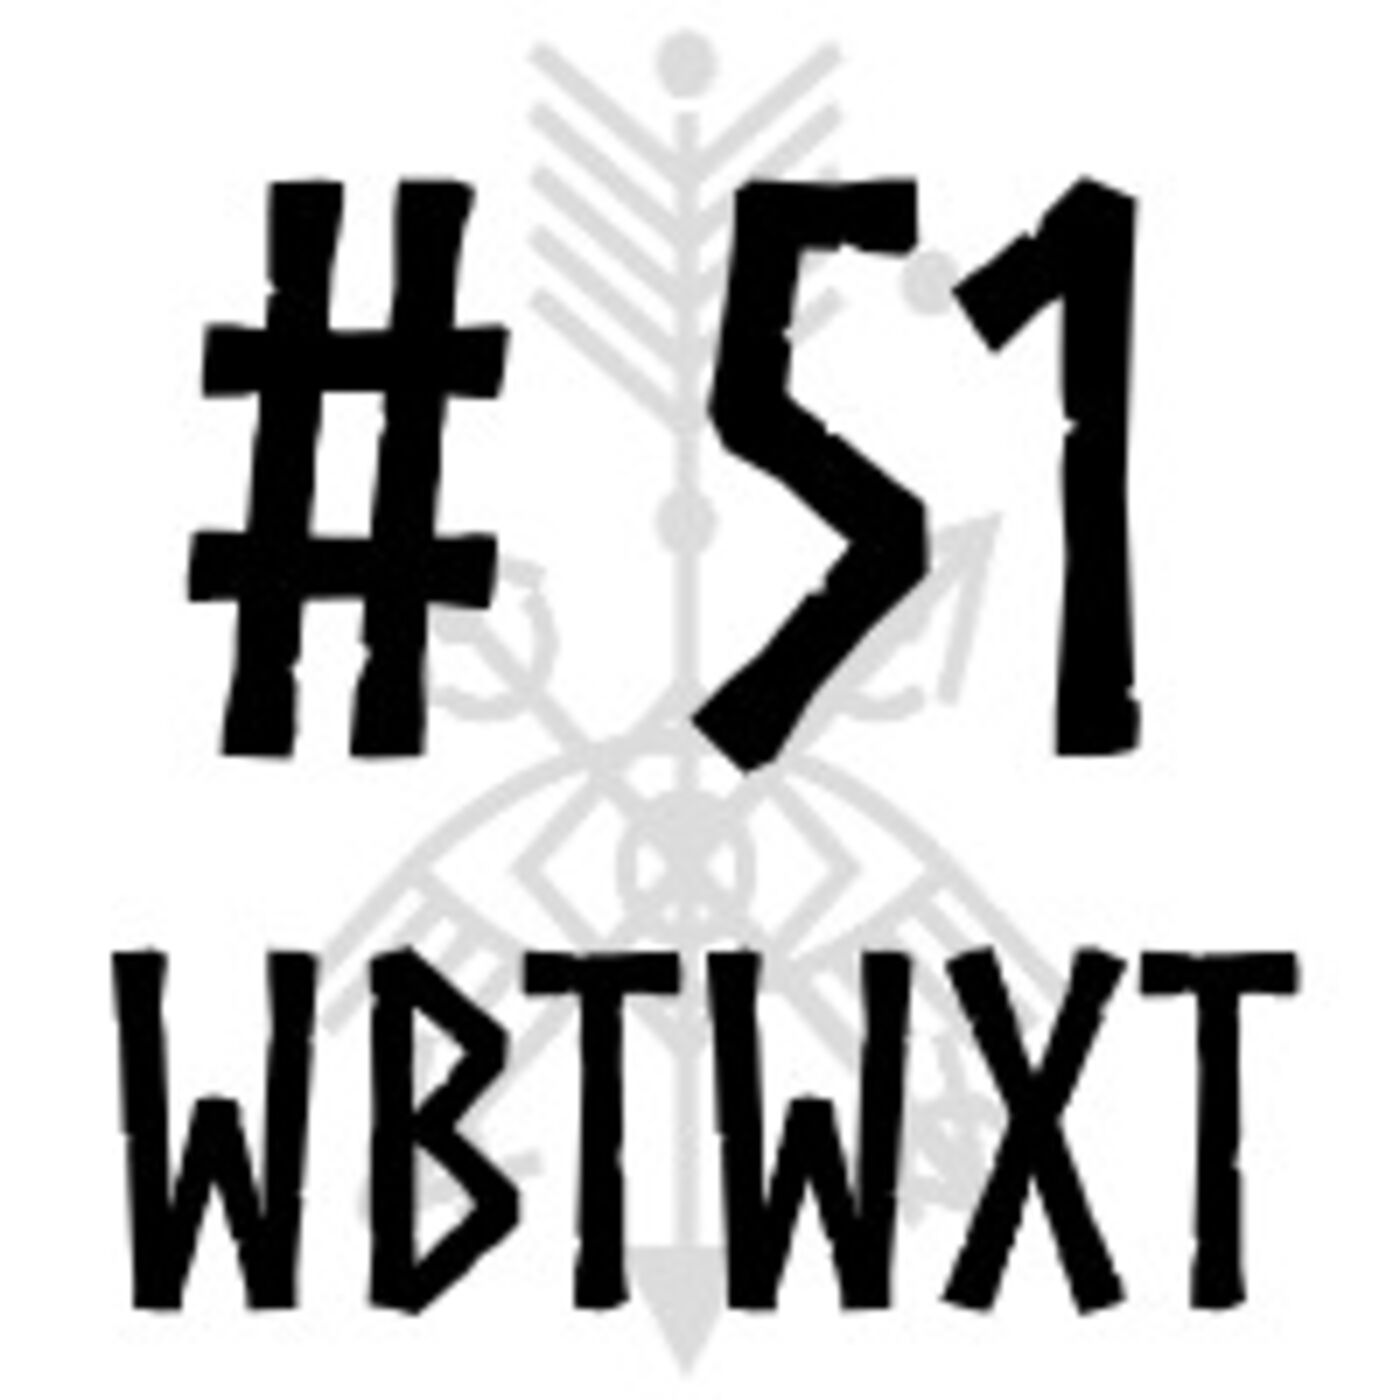 WBTWXT EP #51 - The many faces of death